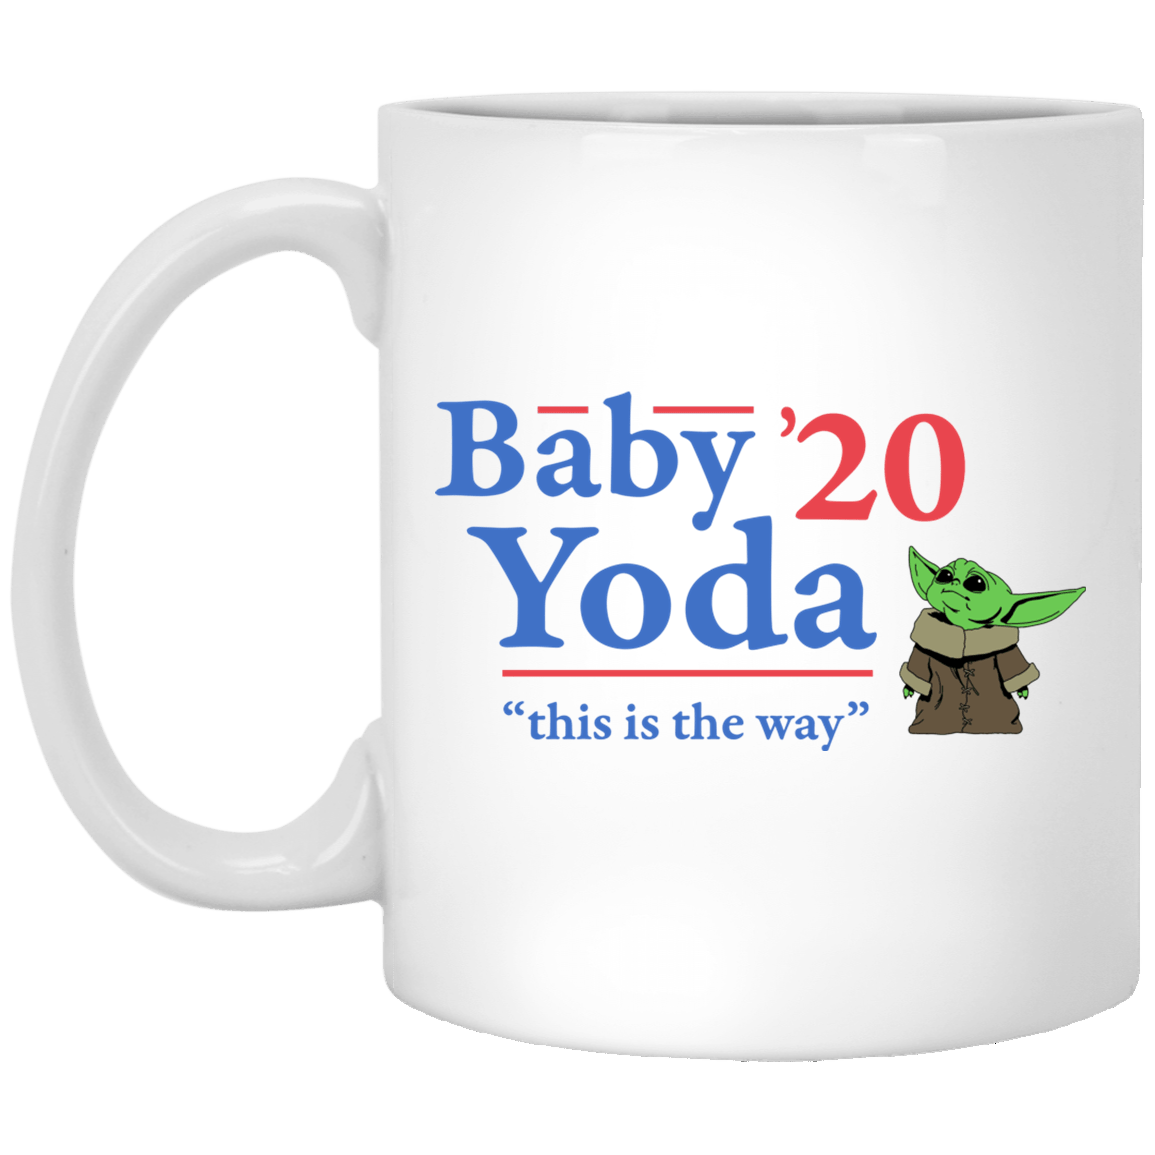 Baby Yoda 2020 This Is The Way Mug 1005-9786-88282913-47417 - Tee Ript